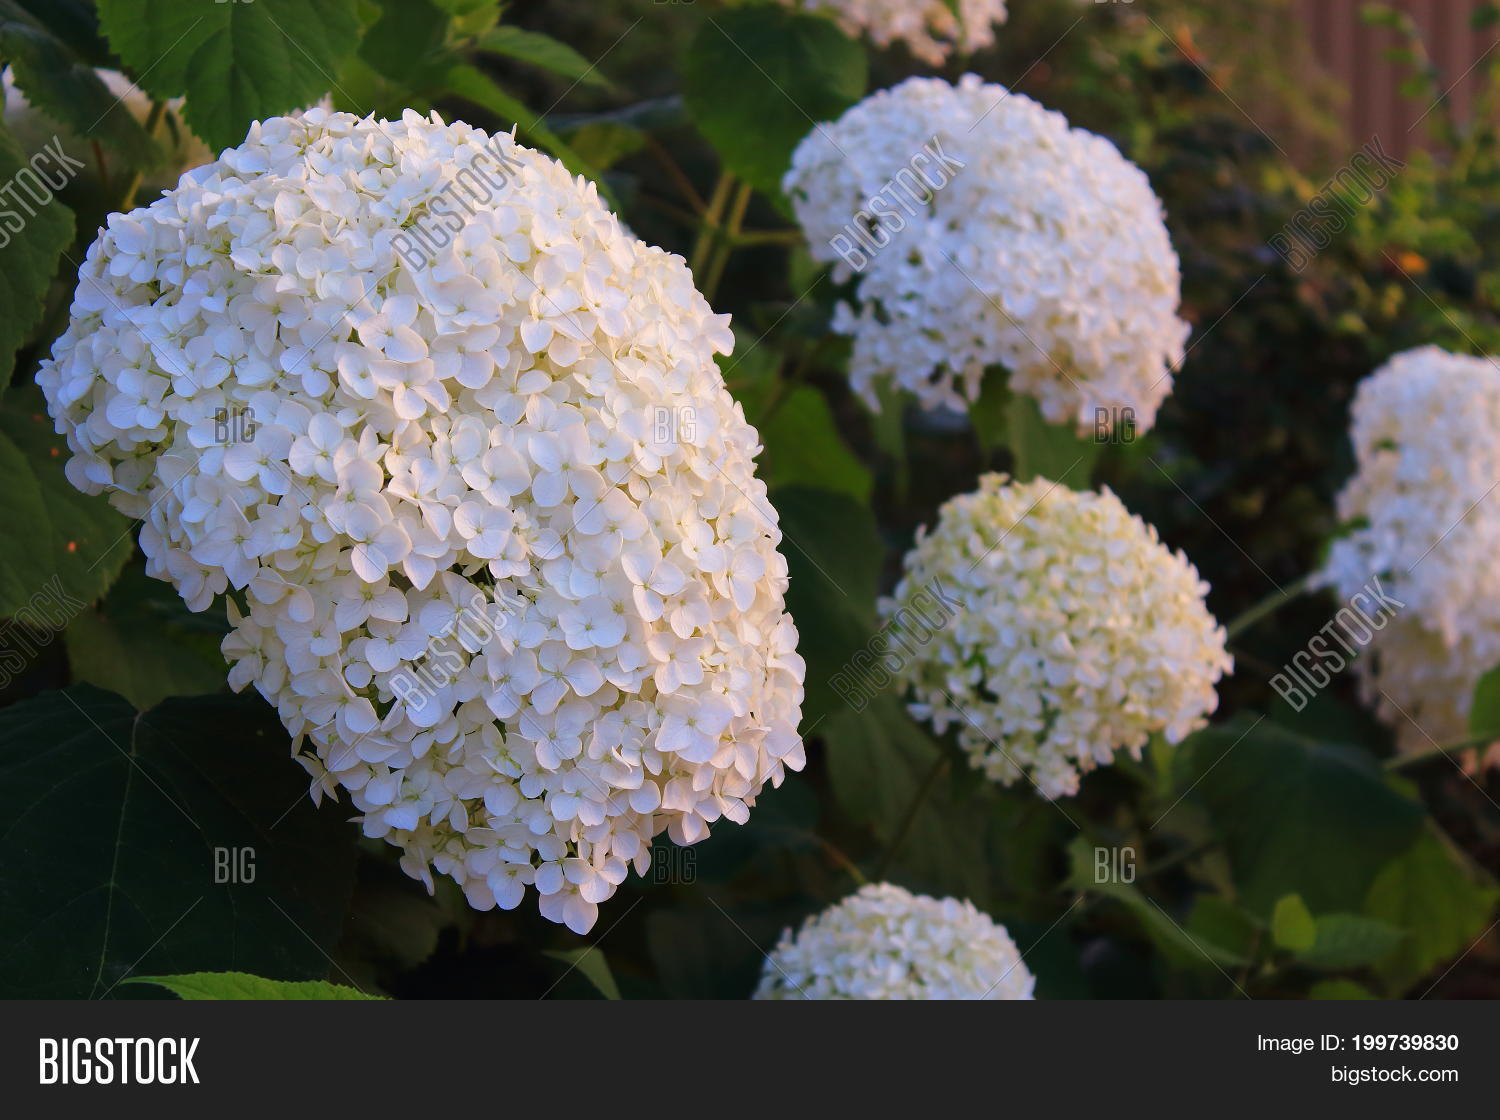 White Viburnum Flowers Image Photo Free Trial Bigstock